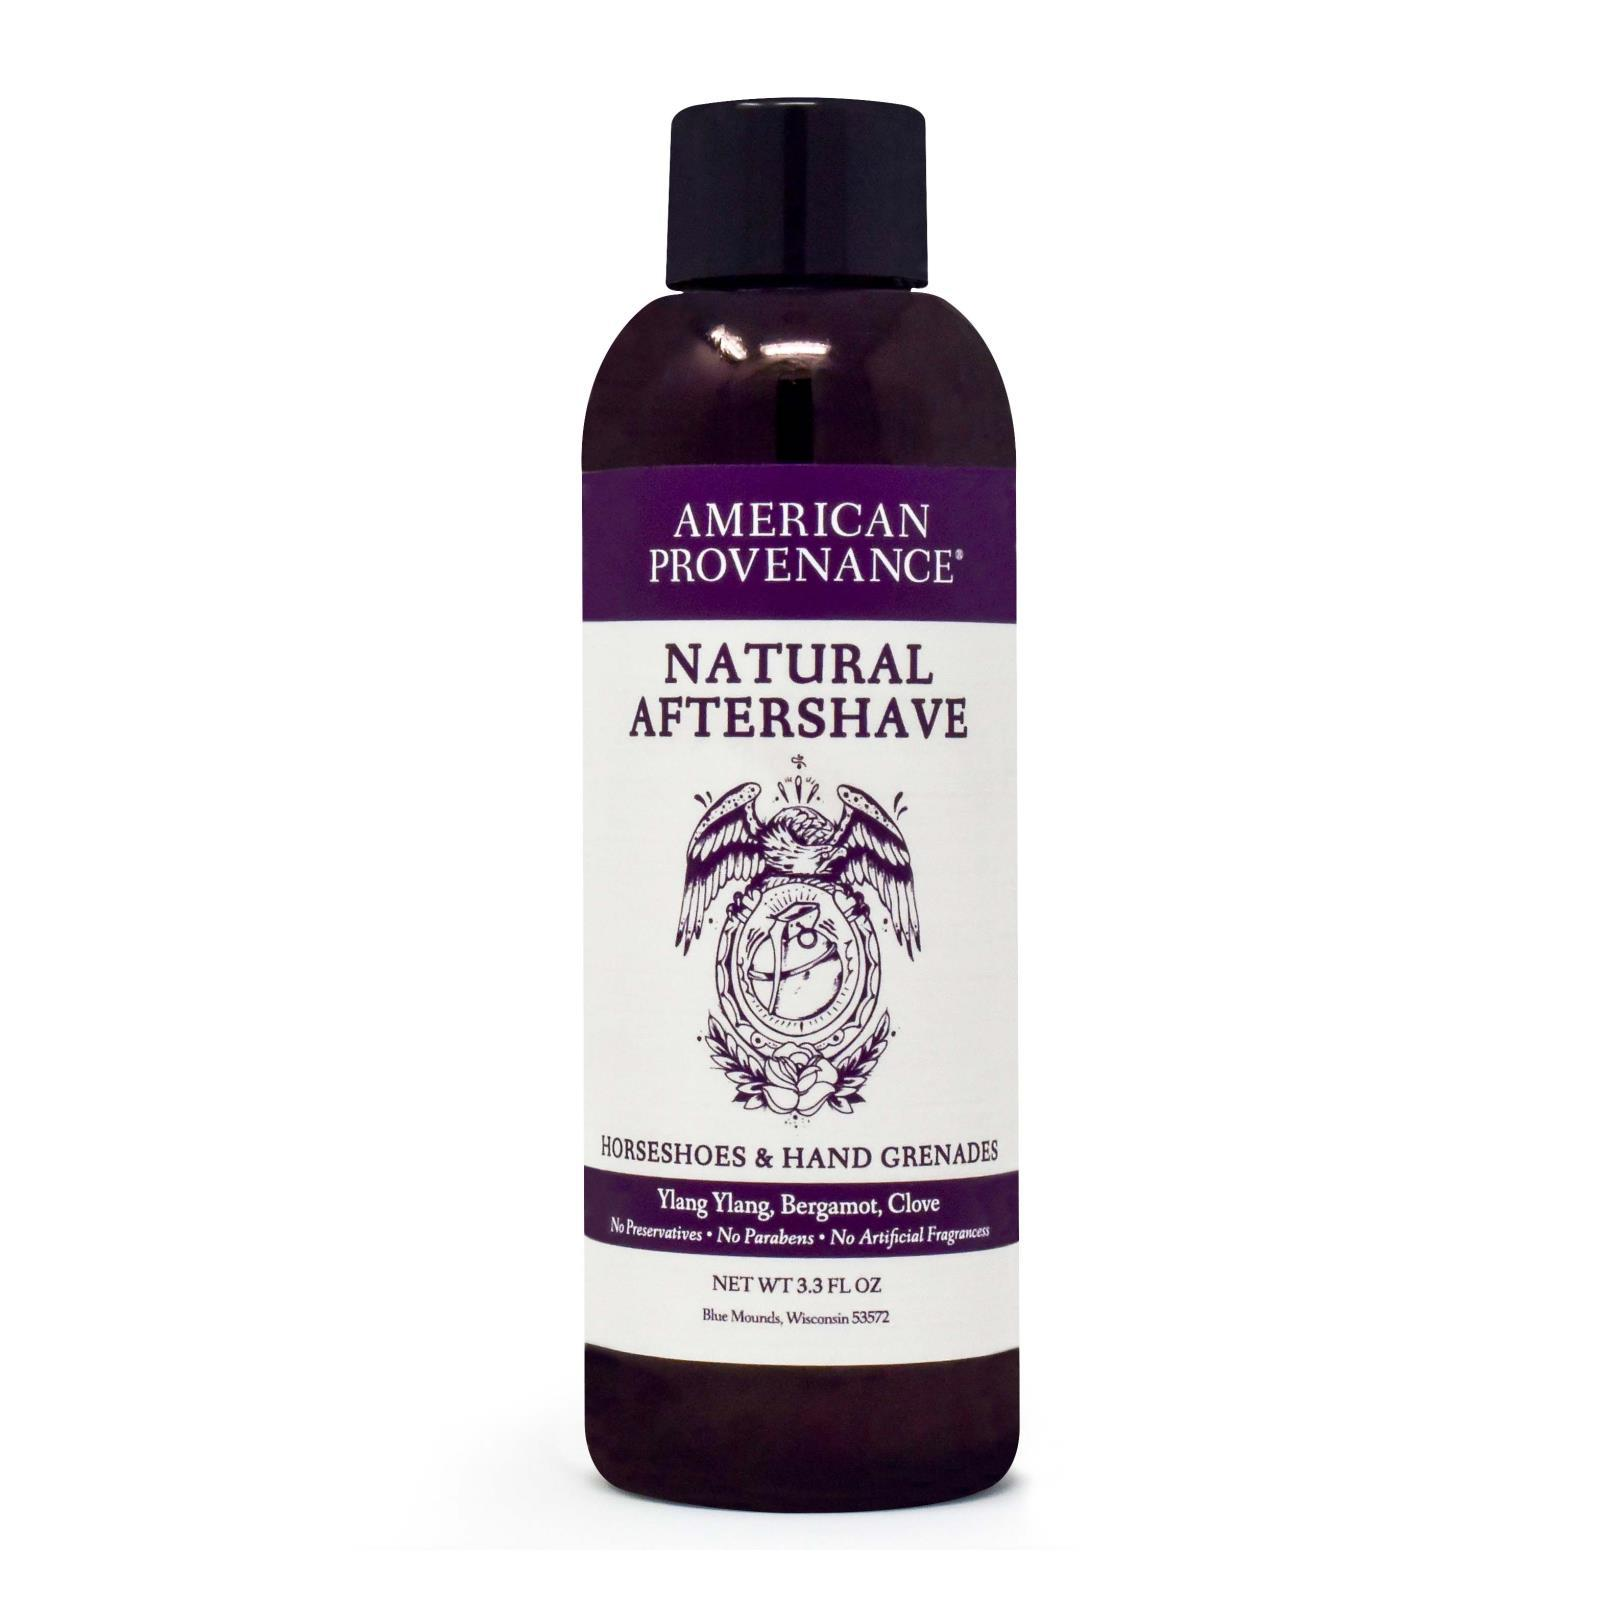 American Provenance - Aftershave - Horseshoes And Hand Grenades - 3.3 Fl Oz. - BeeGreen